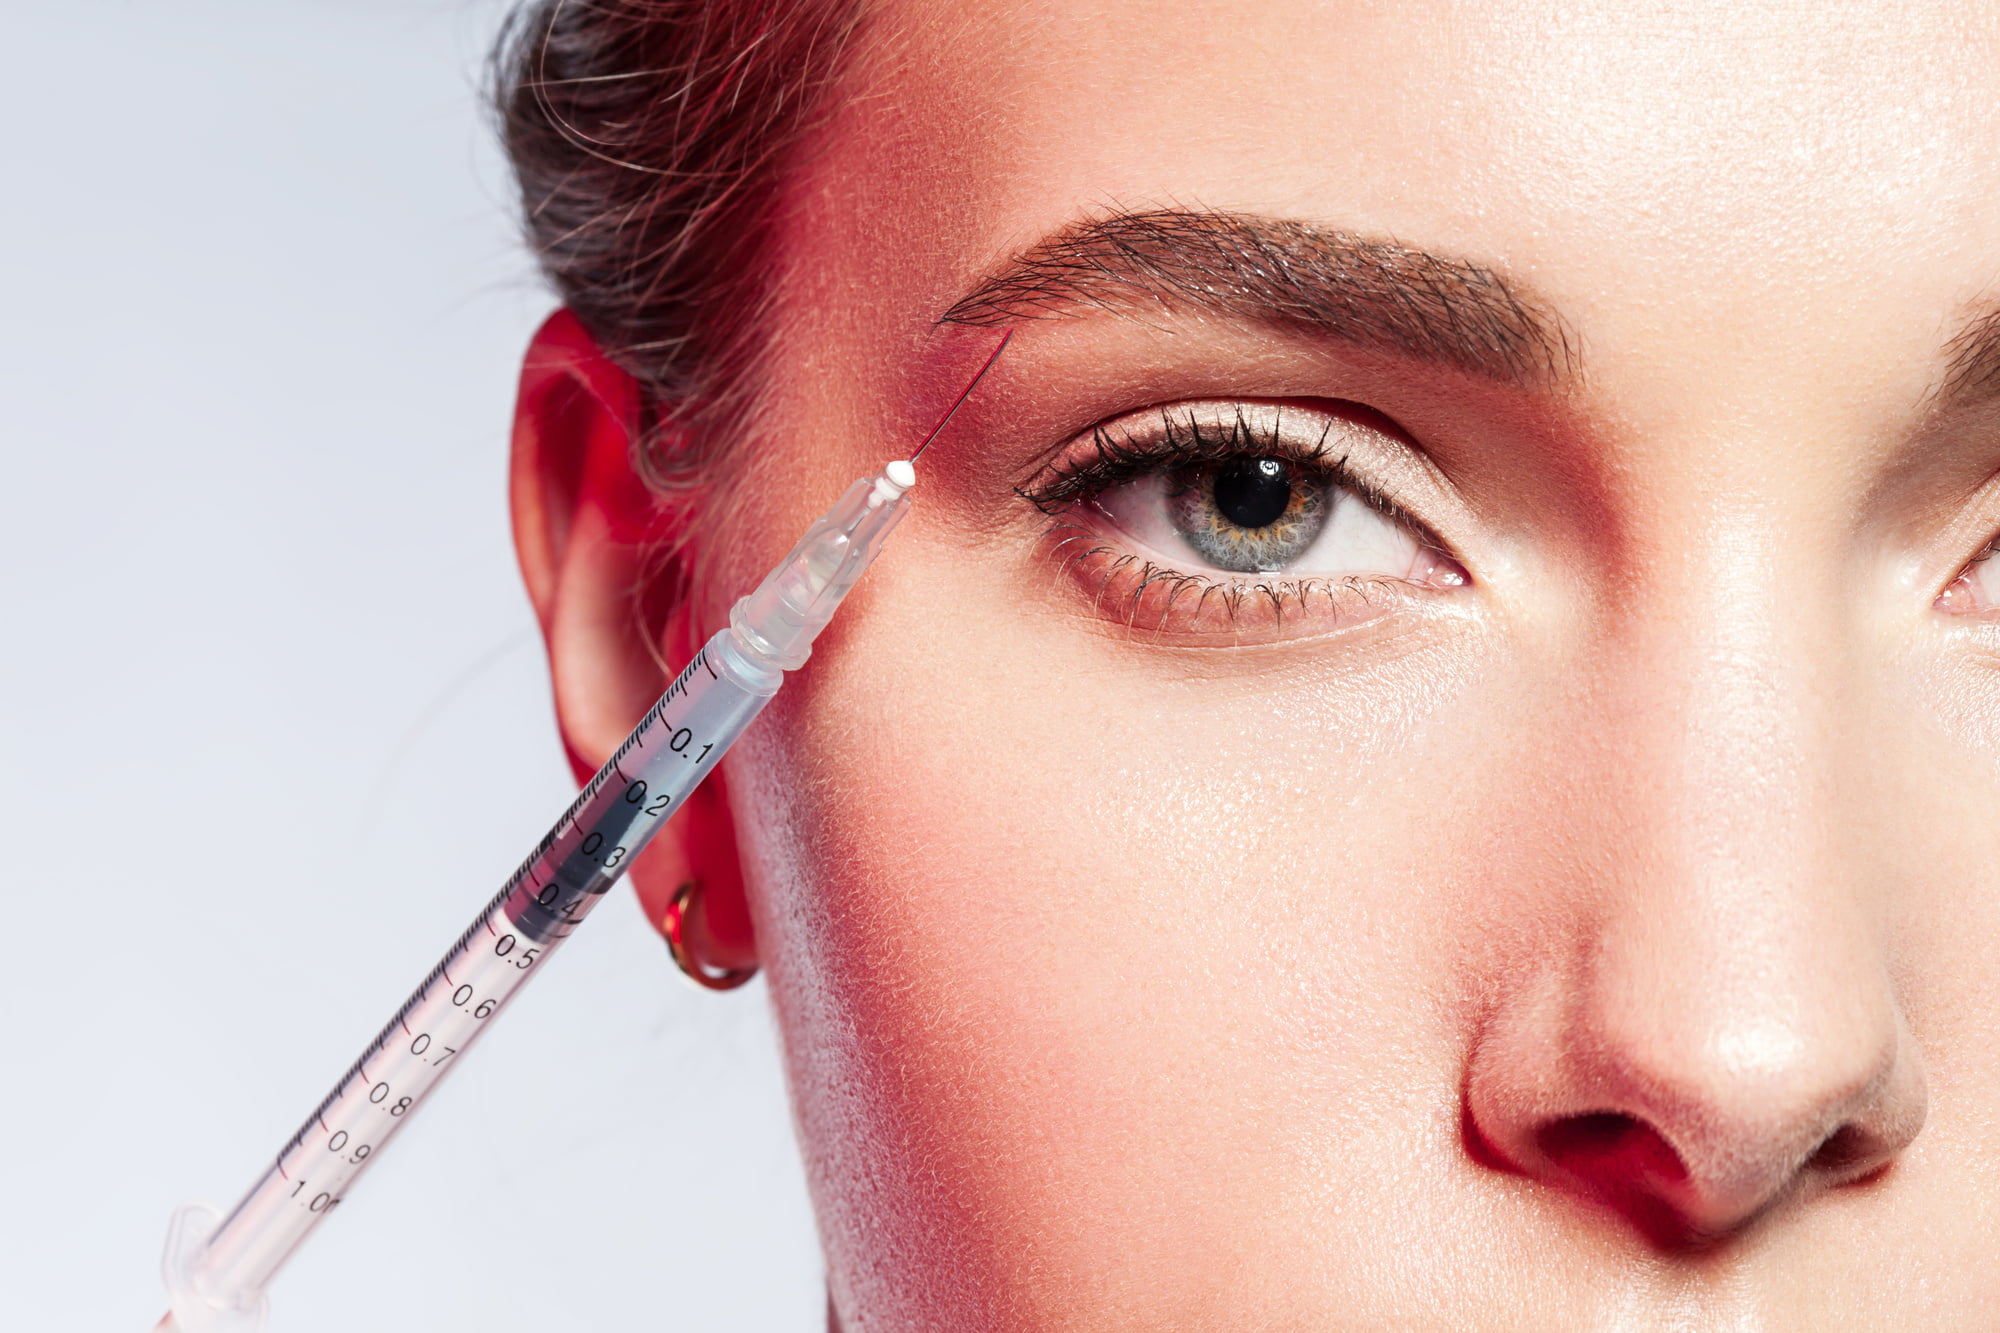 7 Uses for Botox Other Than Fighting Wrinkles